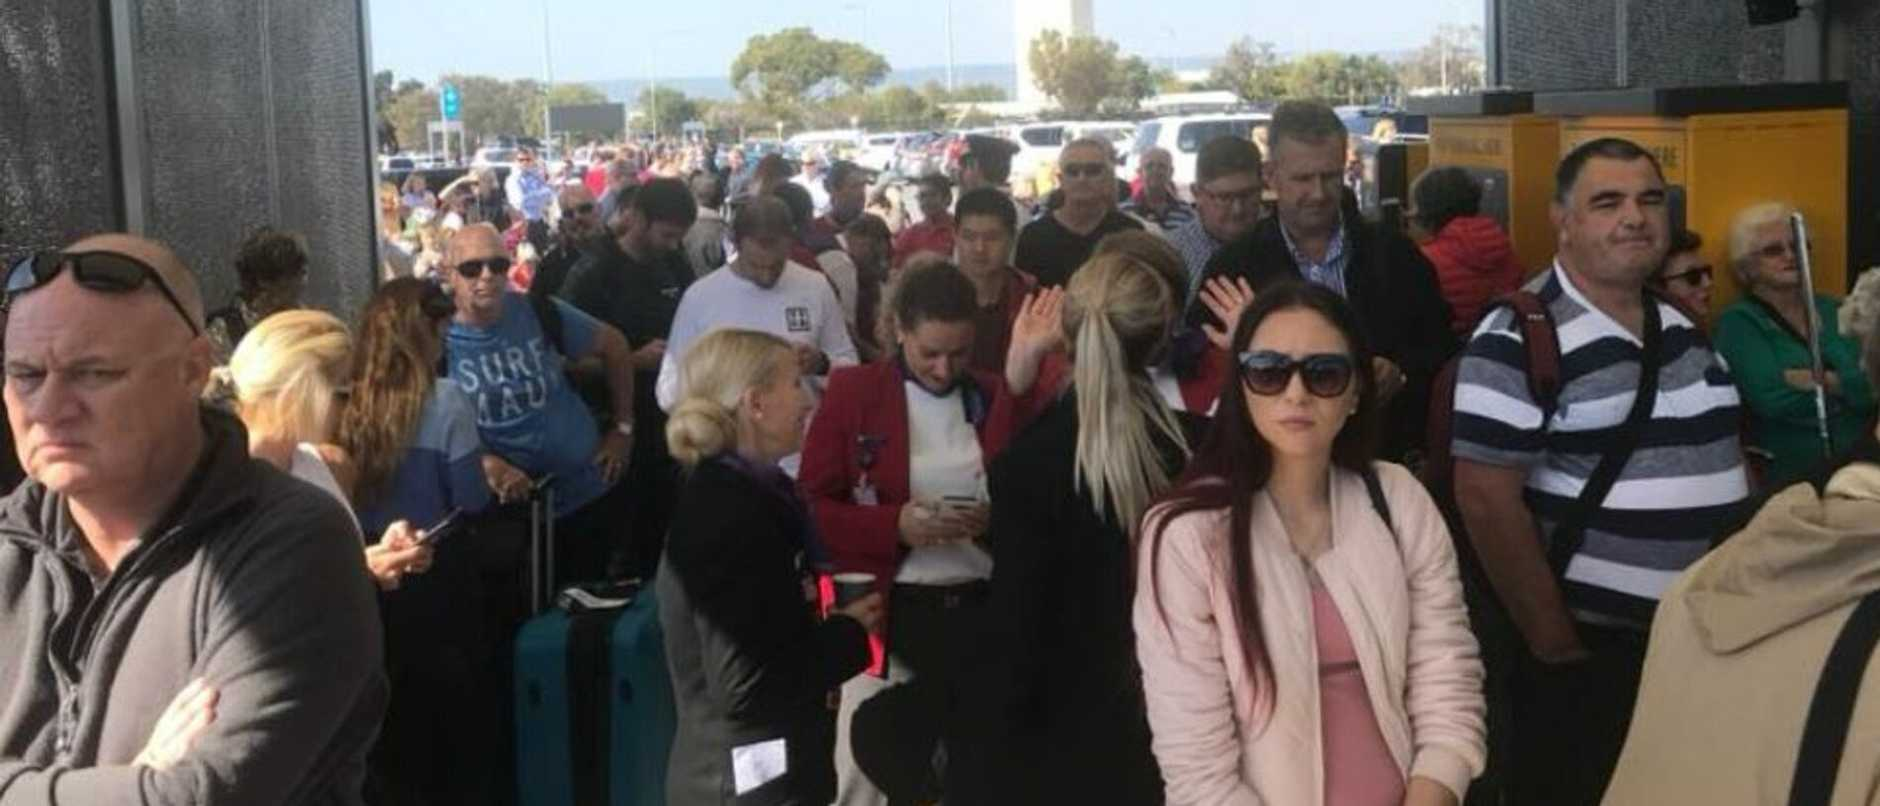 A crowd of people outside Perth airport as it is evacuated. Picture: